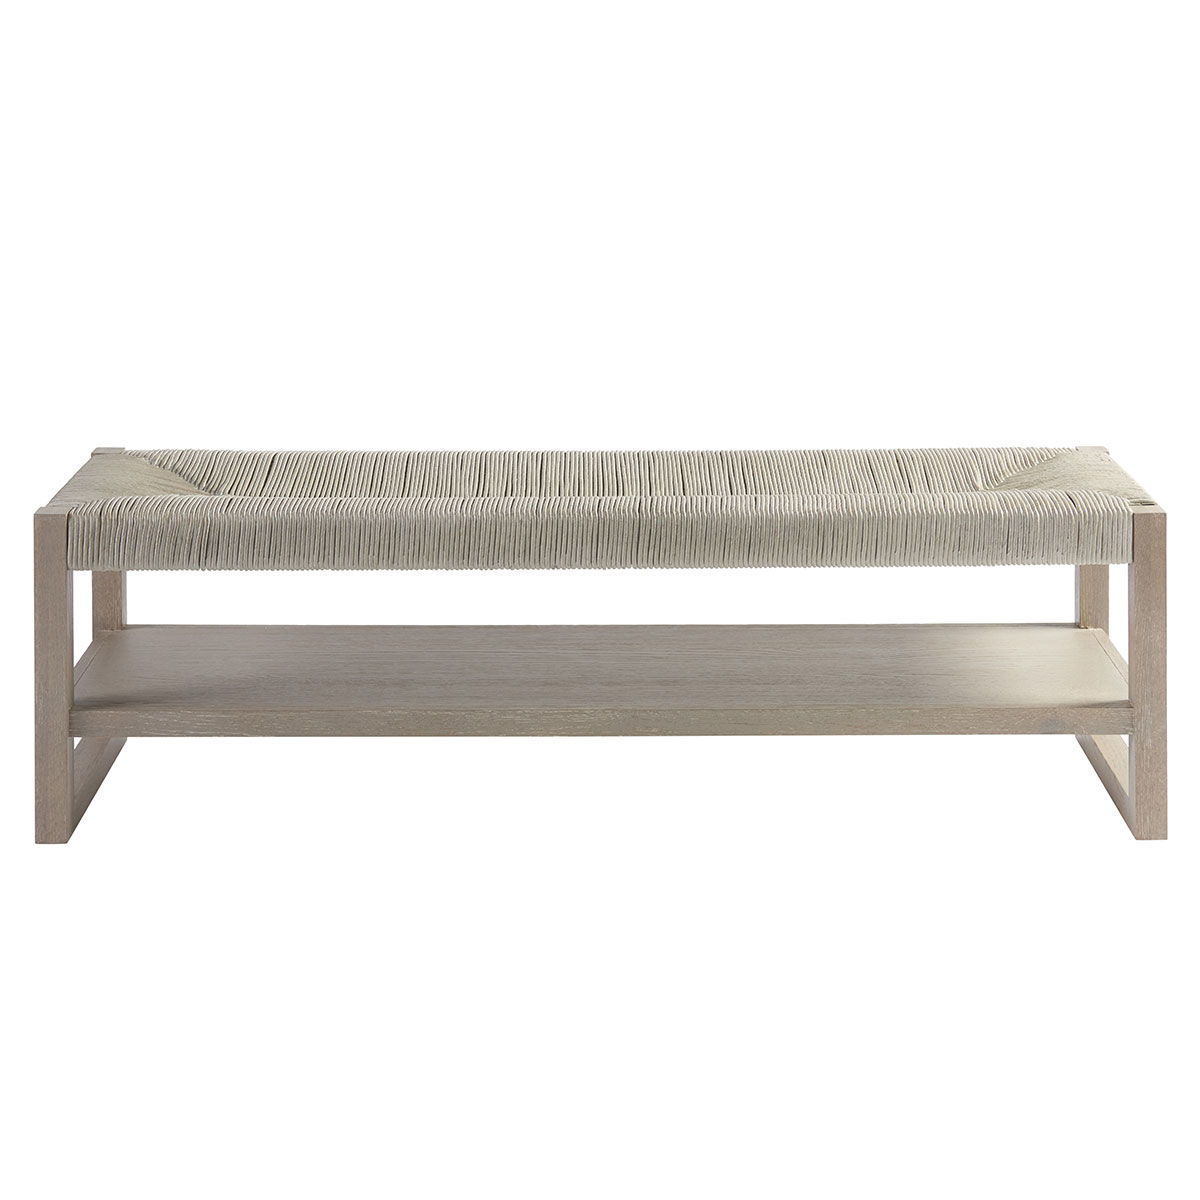 Picture of ZEPHYR END OF THE BED BENCH